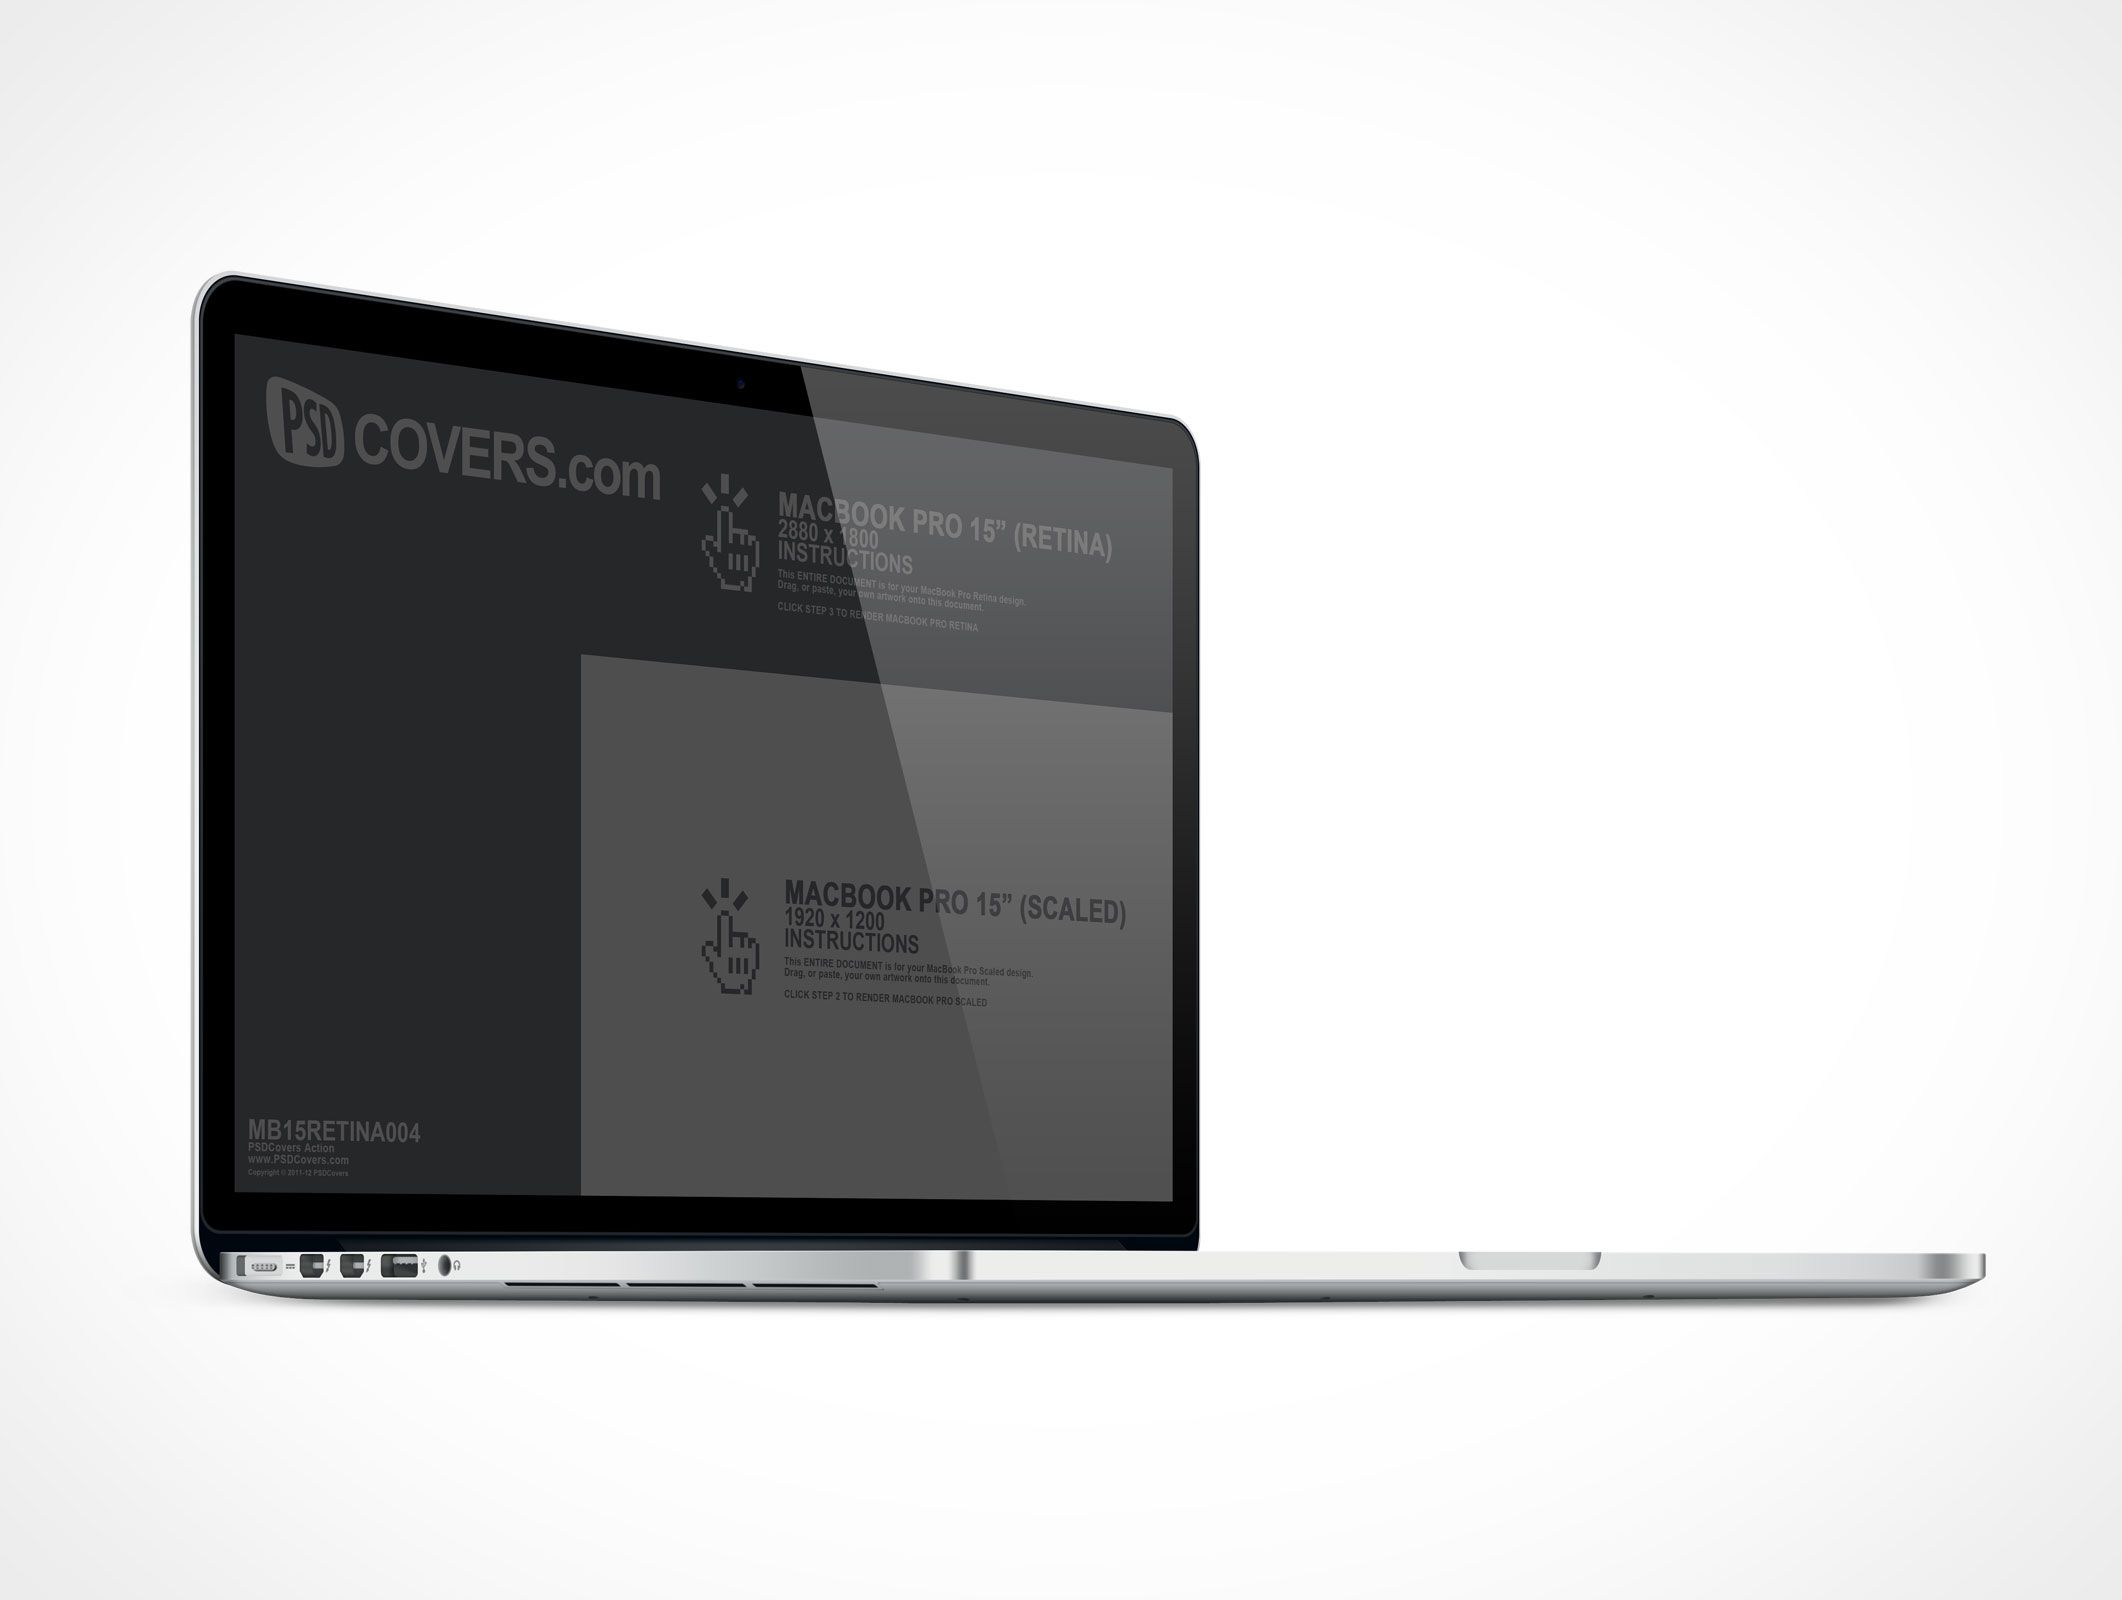 MB15RETINA004 is the MacBook Pro with Retina display resolution of 2880 x 1800 @ 300DPI. Similar to MB15RETINA002, this Cover Action displays the MacBook Pro Retina from the left side with the screen at 90° rather than 70°. Supports rendering your 1920 x 1200 designs as well. Great for your application mockups. #displayresolution